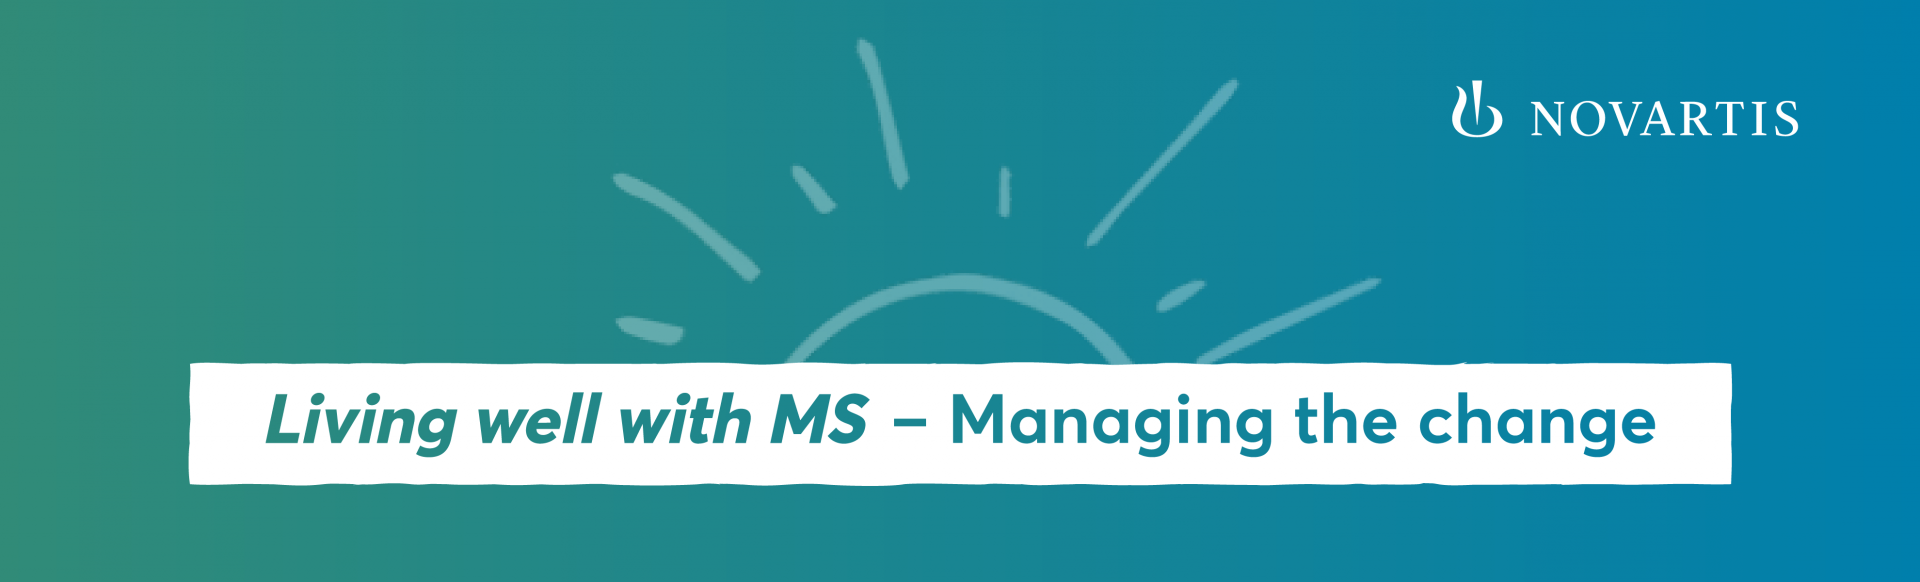 Top banner. Novatis. 'Living well with MS―Managing the change'